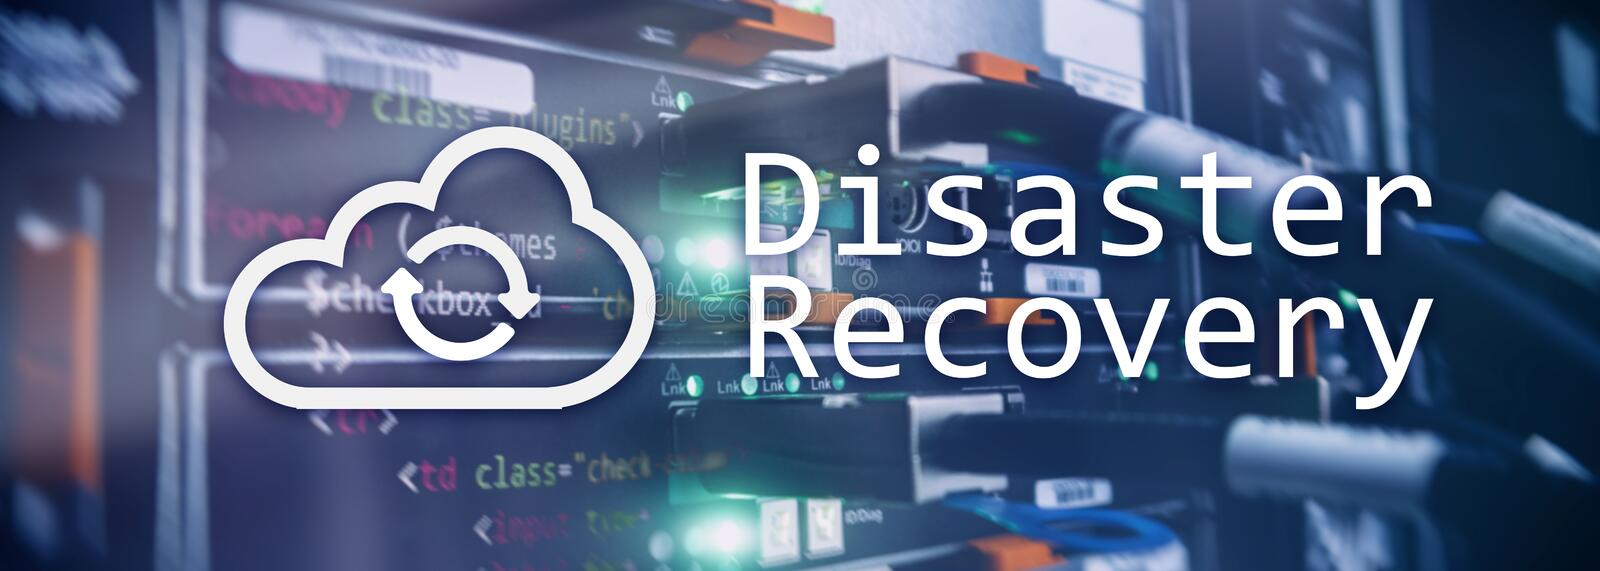 DIsaster recovery. Data loss prevention. Server room on background. DIsaster recovery. Data loss prevention. Server room on background stock illustration